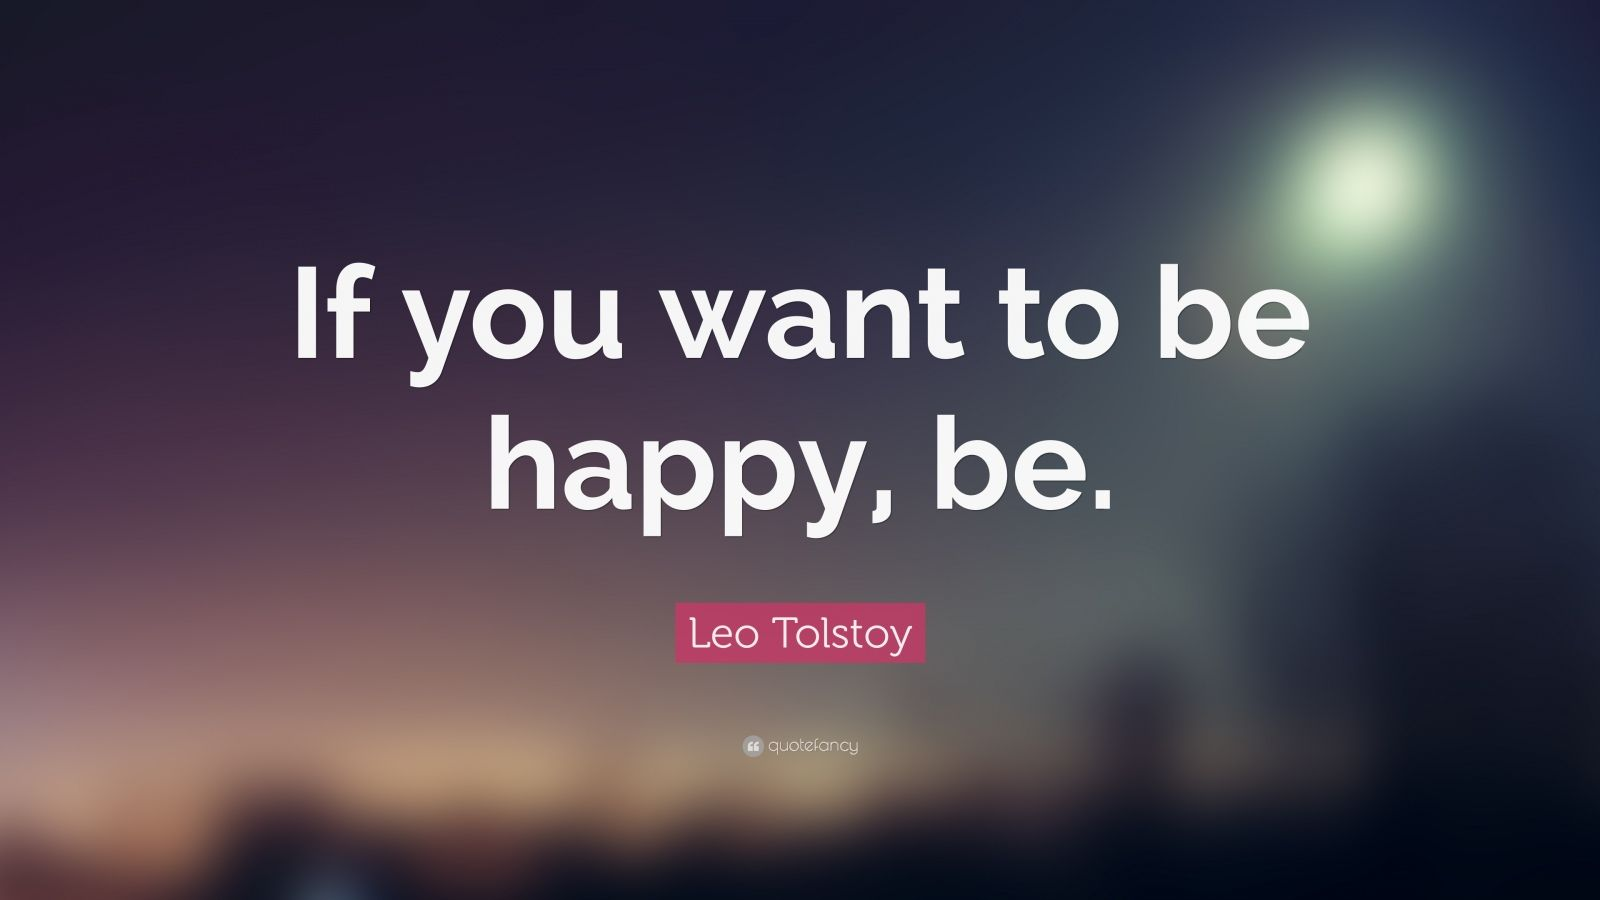 leo tolstoy quote if you want to be happy be 23 wallpapers quotefancy. Black Bedroom Furniture Sets. Home Design Ideas